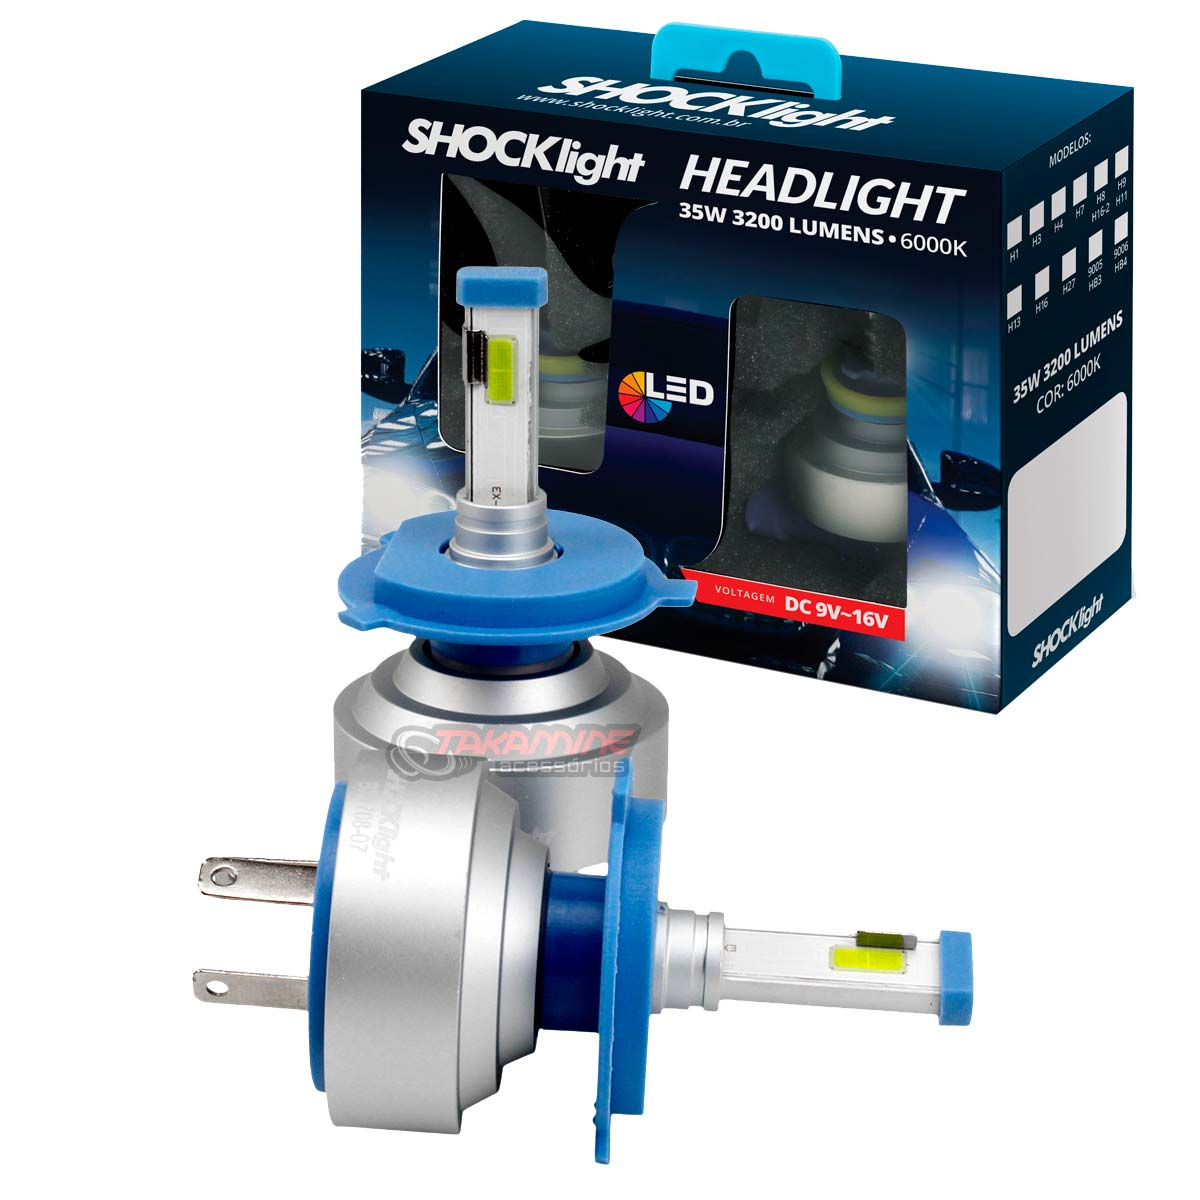 Kit LED tipo xenon modelo H4 35W encaixe original plug & play New Headlight